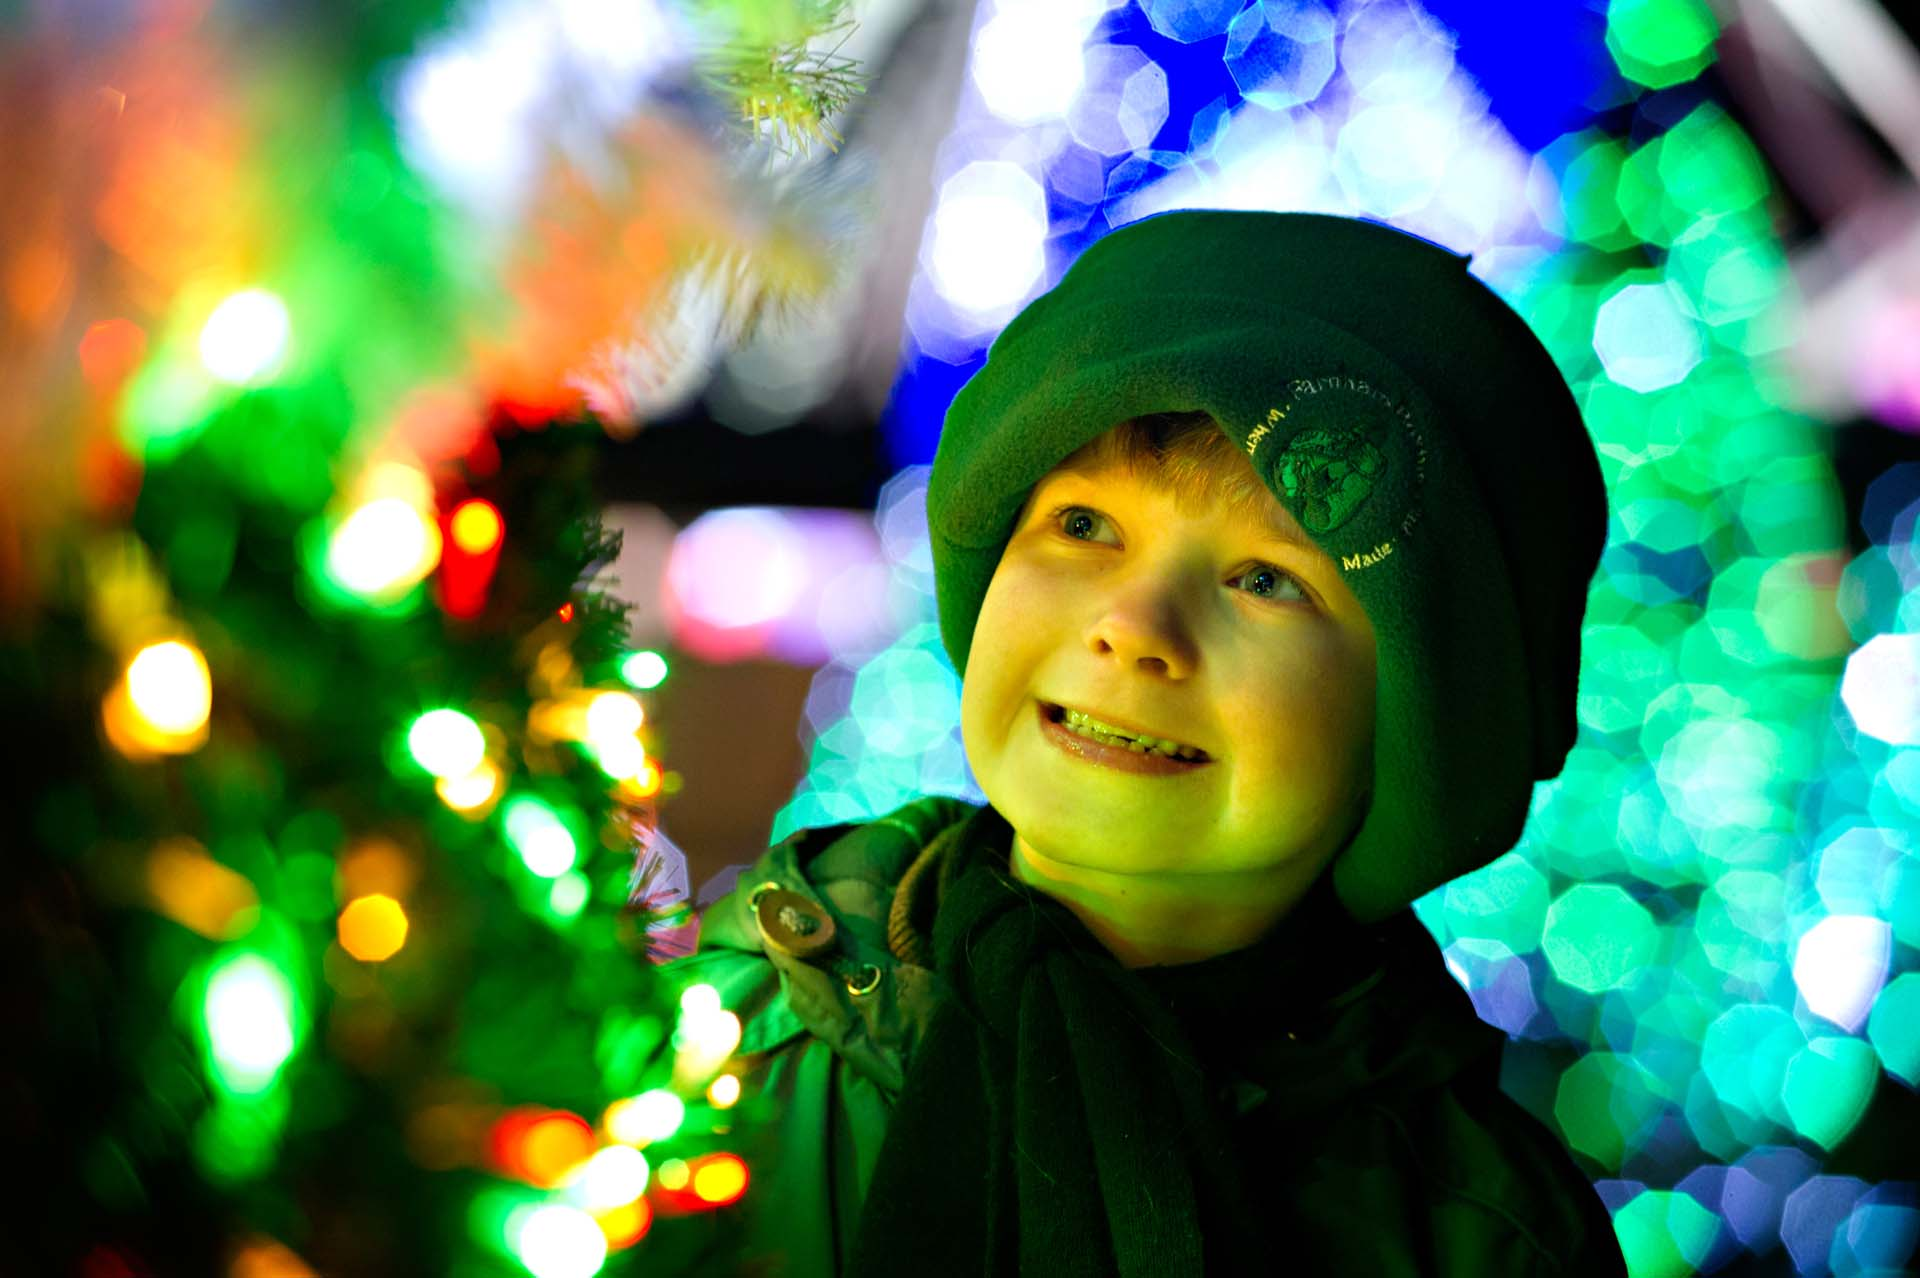 Child in hat smiling at the Christmas tree lights